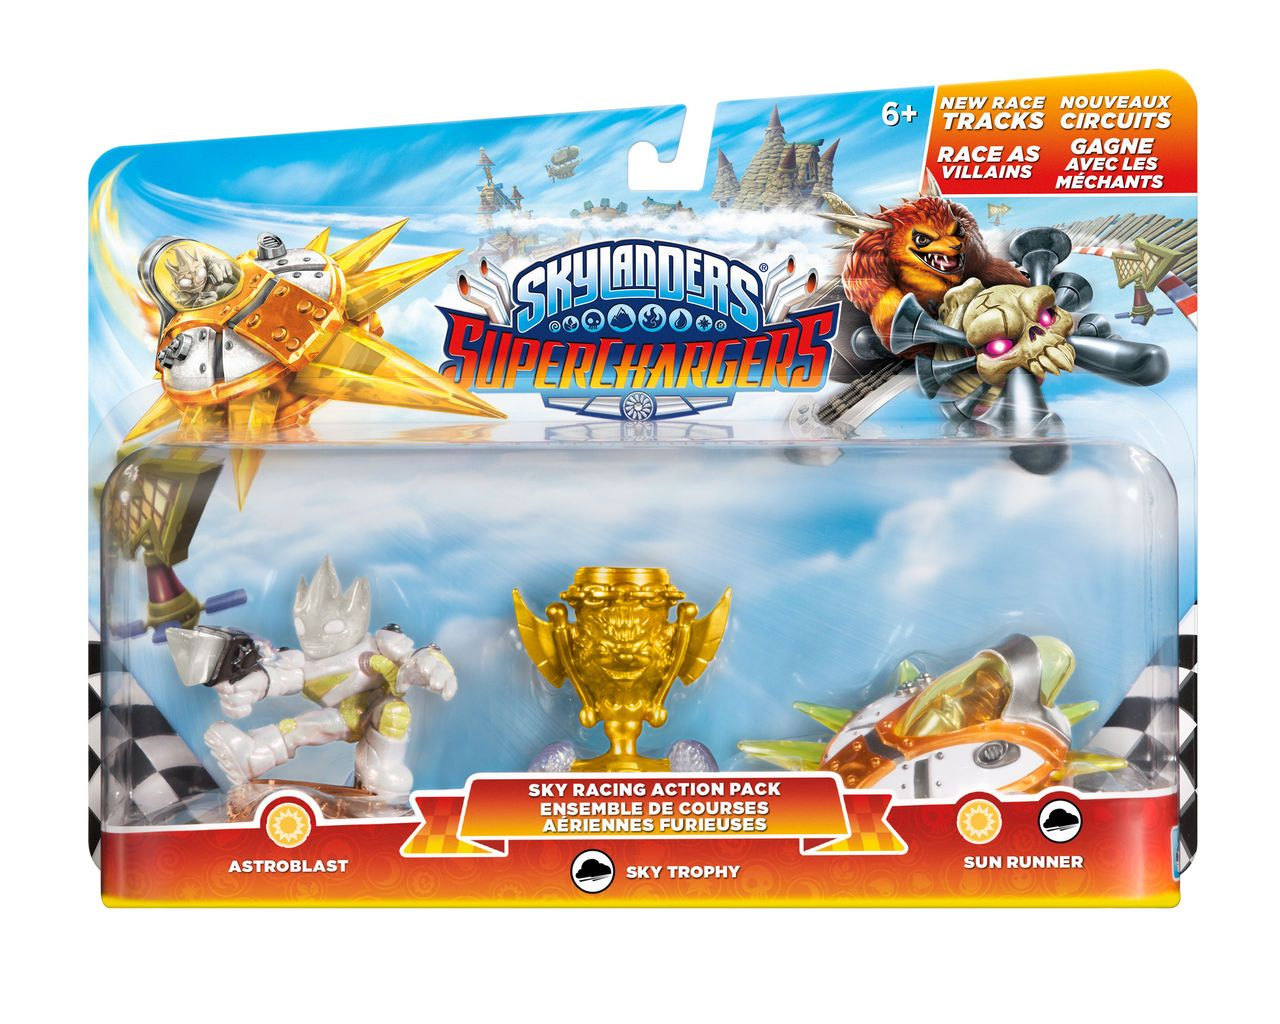 ACTIVISION Activision Fanartikel »Skylanders Superchargers Racing Pack W3«